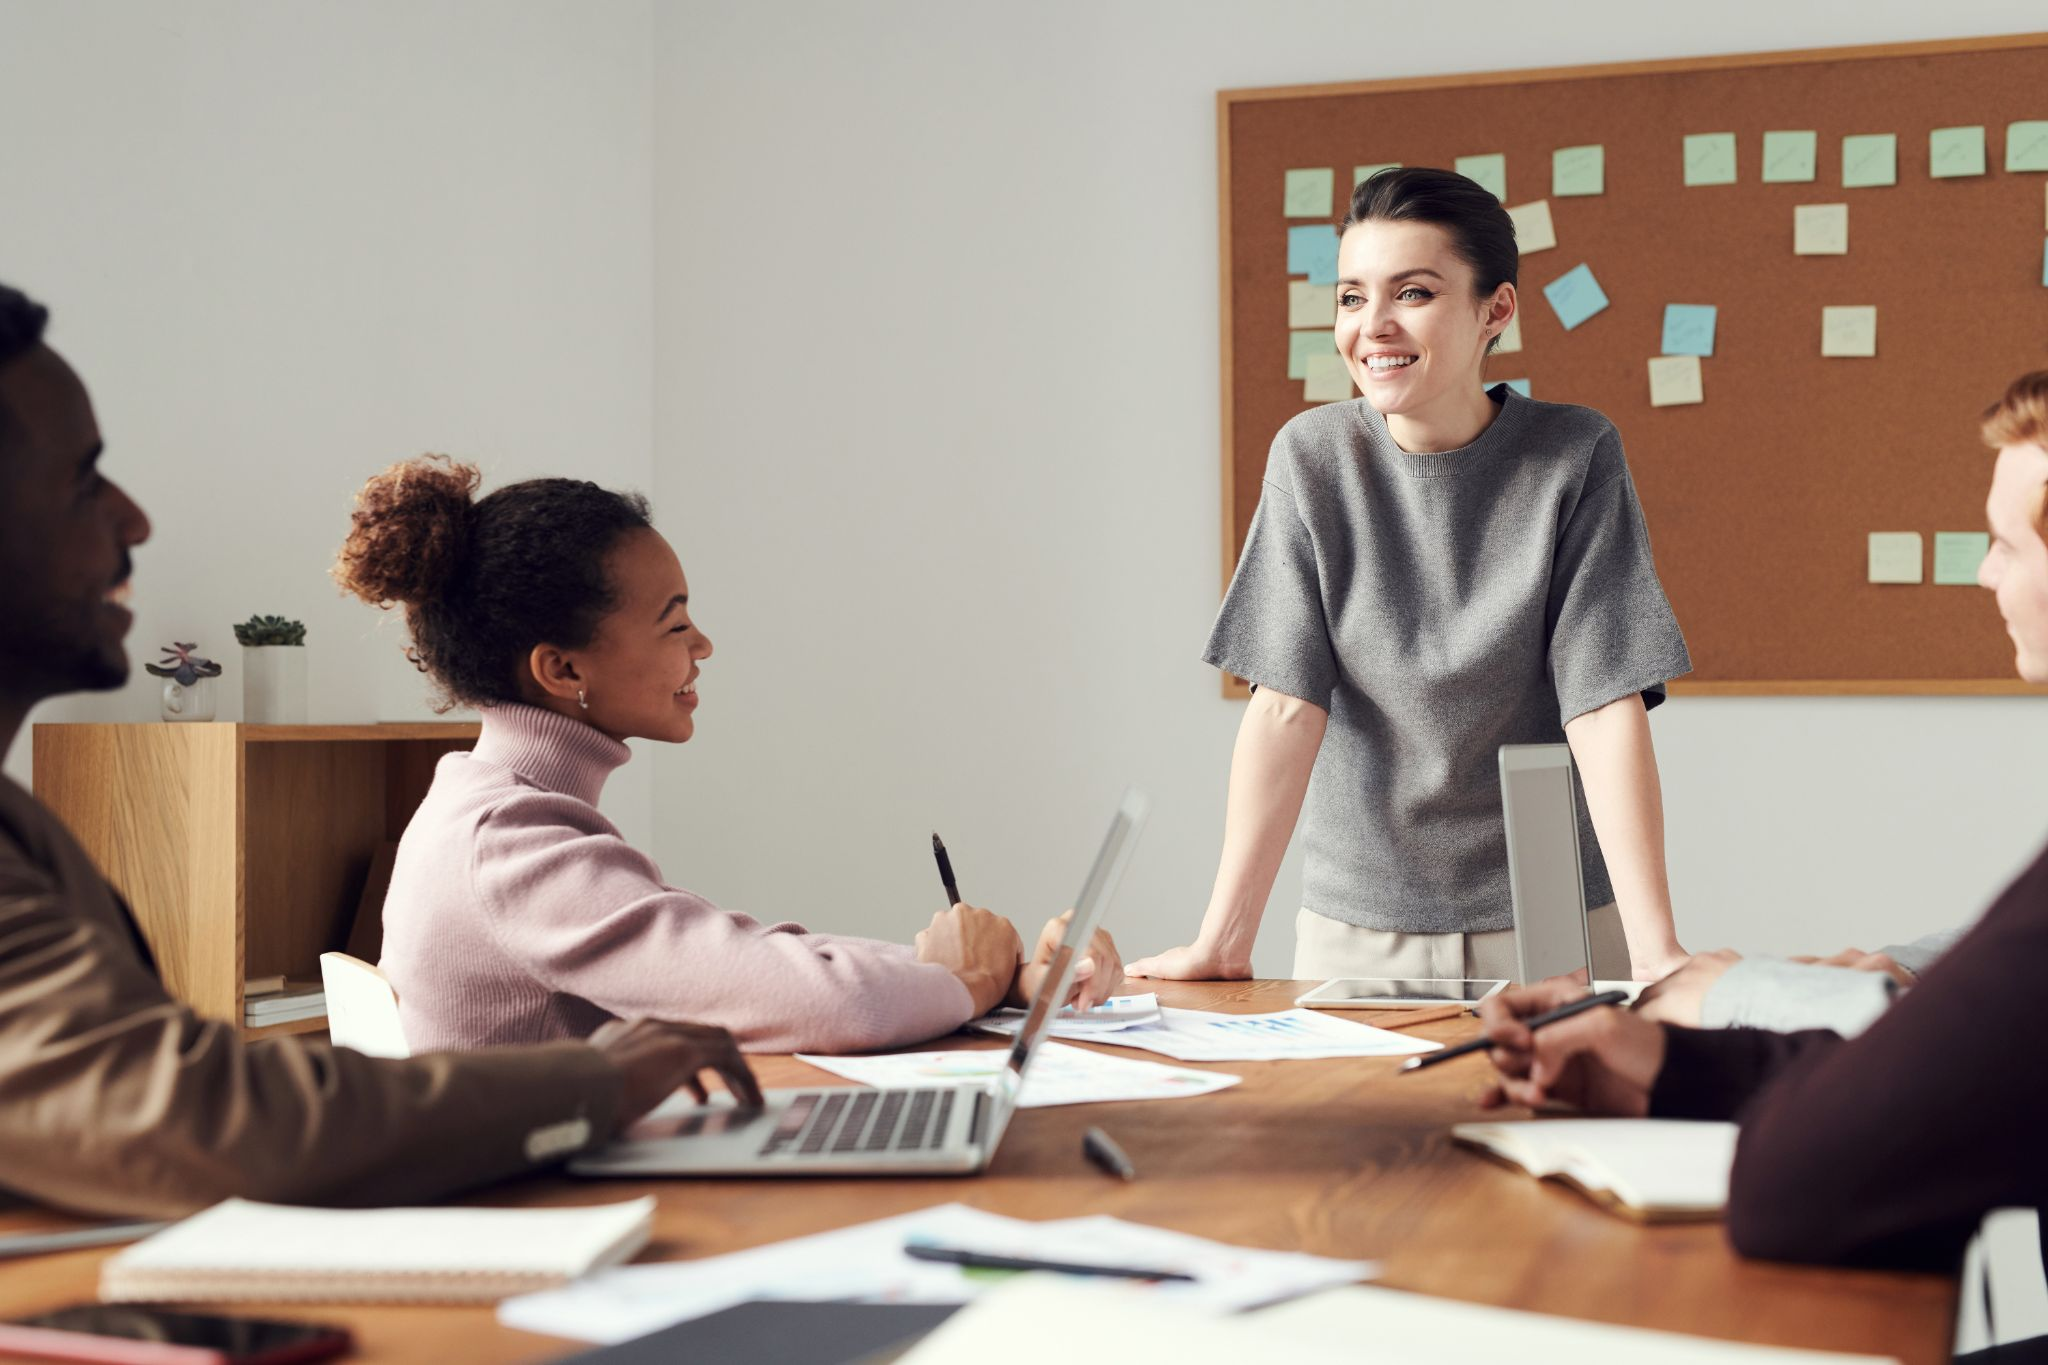 Employee engagement in internal communications